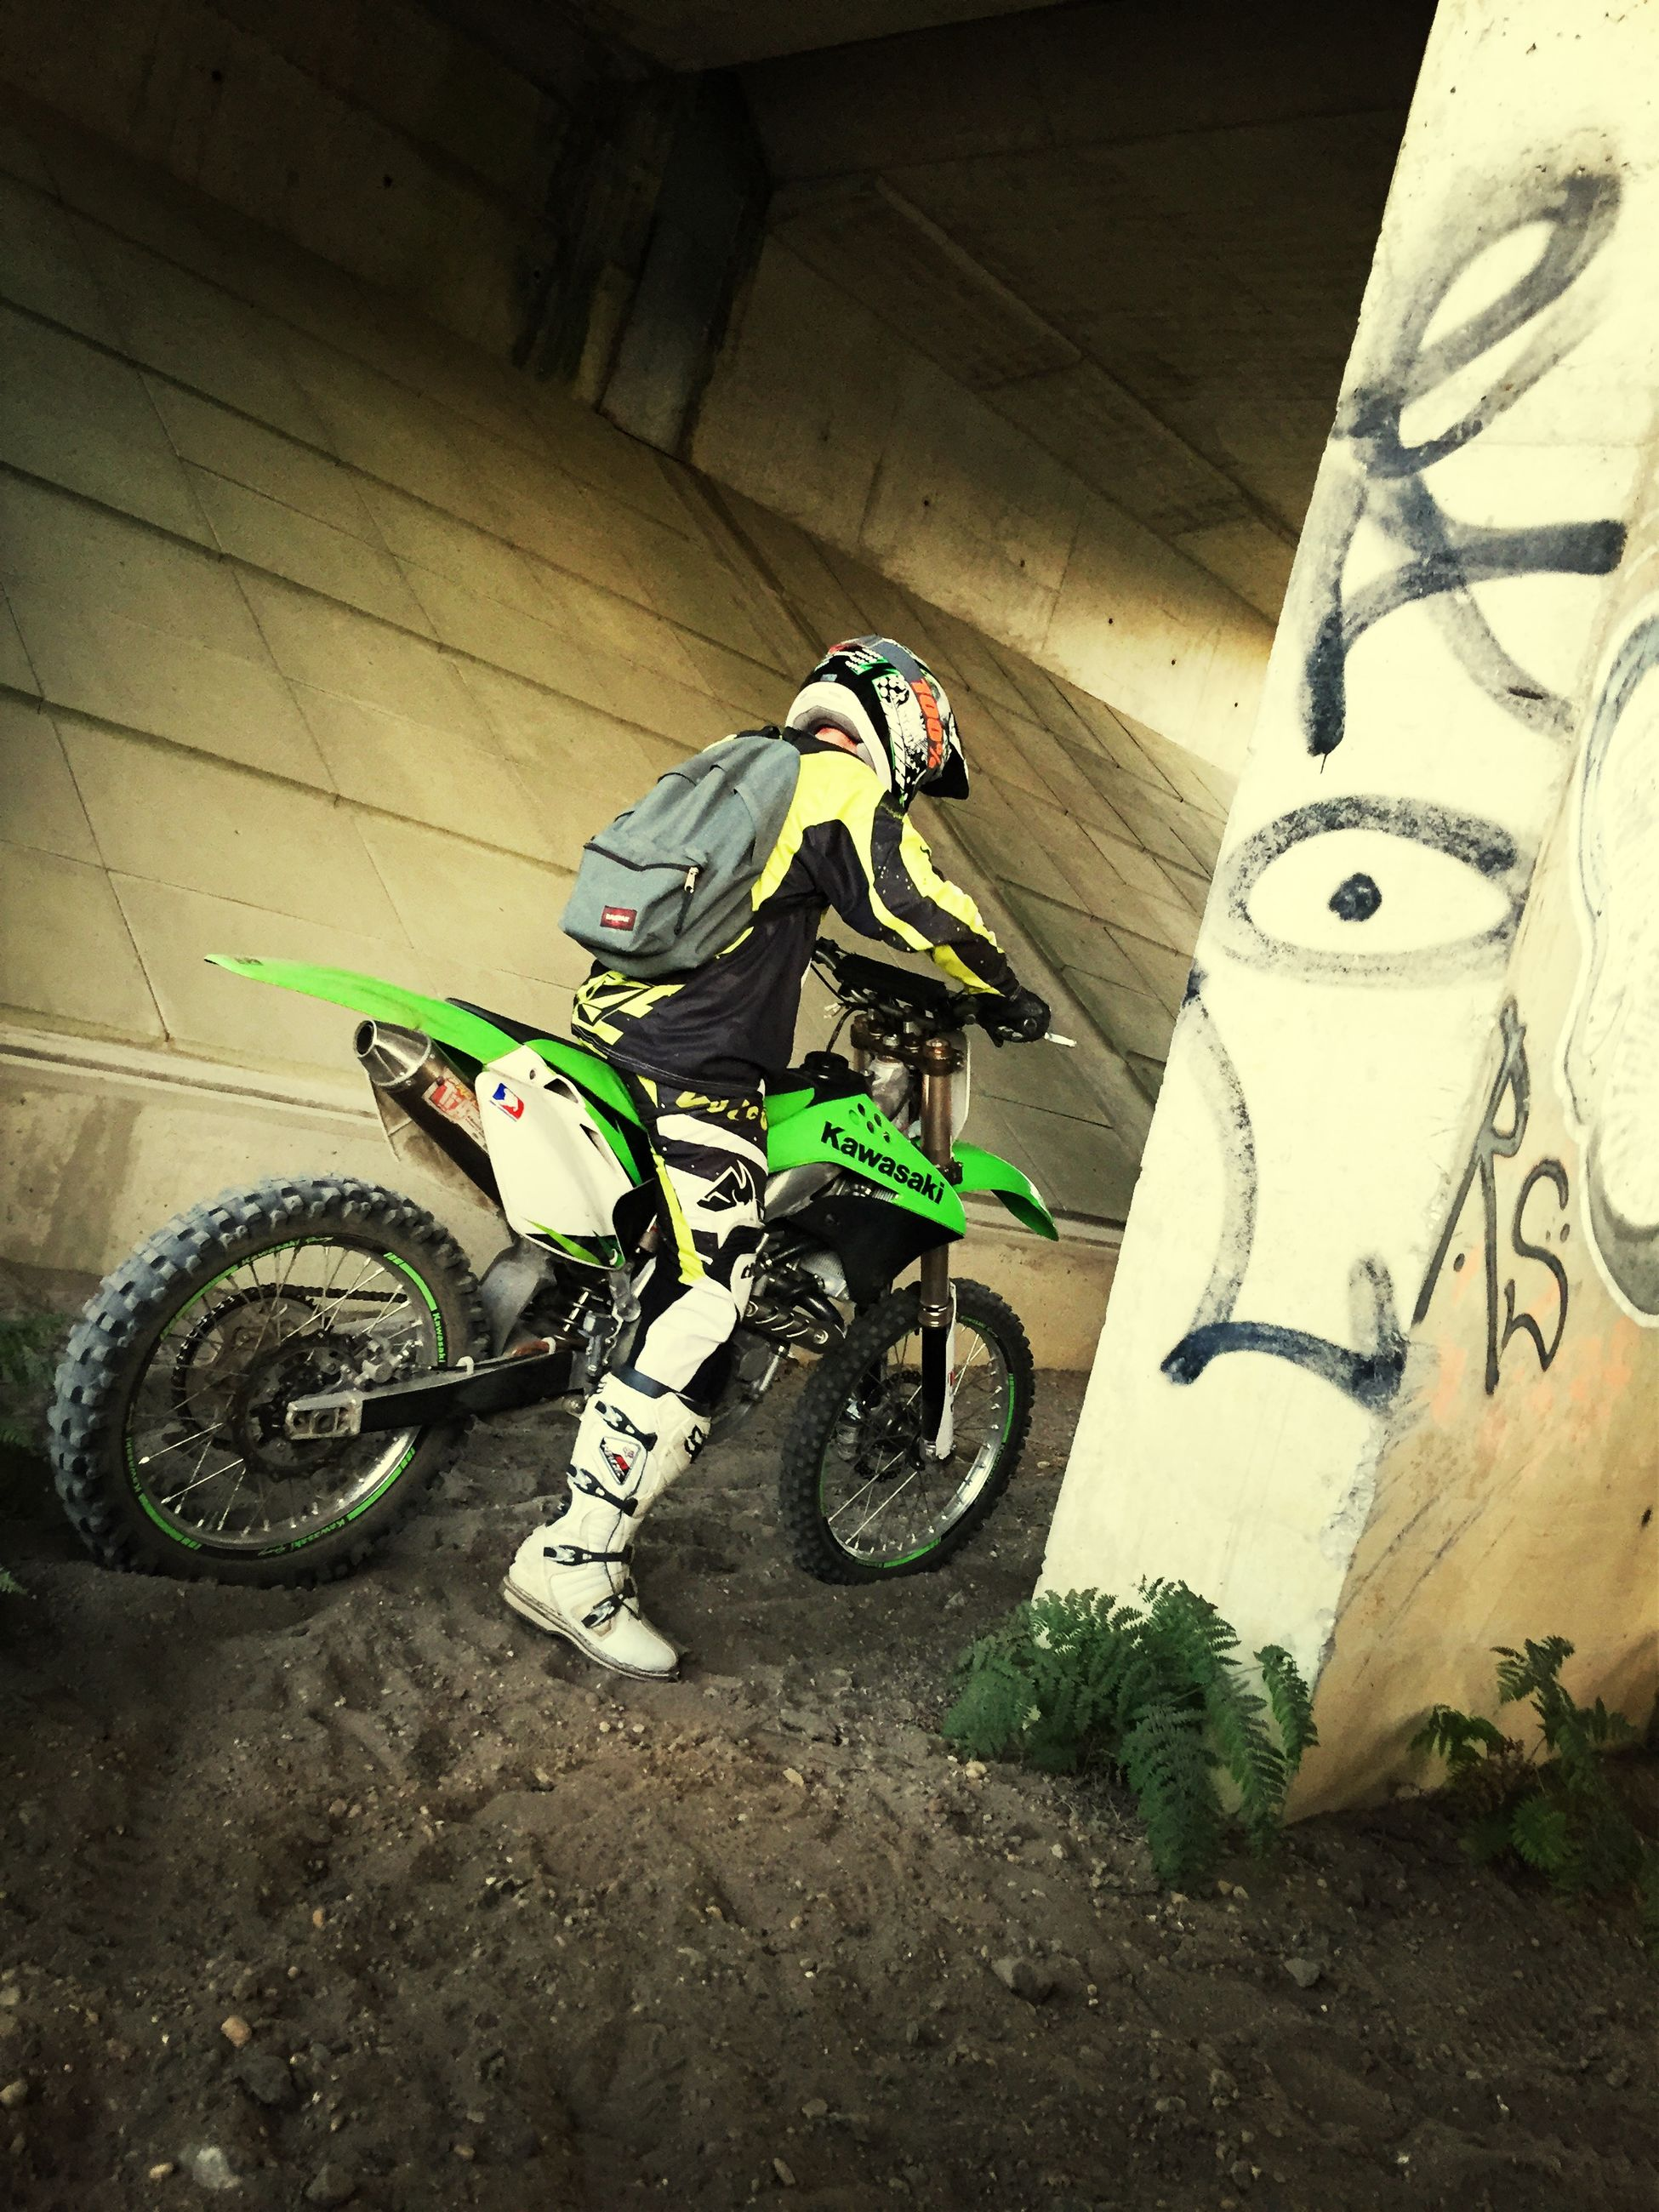 bicycle, transportation, land vehicle, mode of transport, high angle view, stationary, parking, street, parked, motorcycle, wall - building feature, day, outdoors, sunlight, no people, riding, graffiti, shadow, shoe, wheel